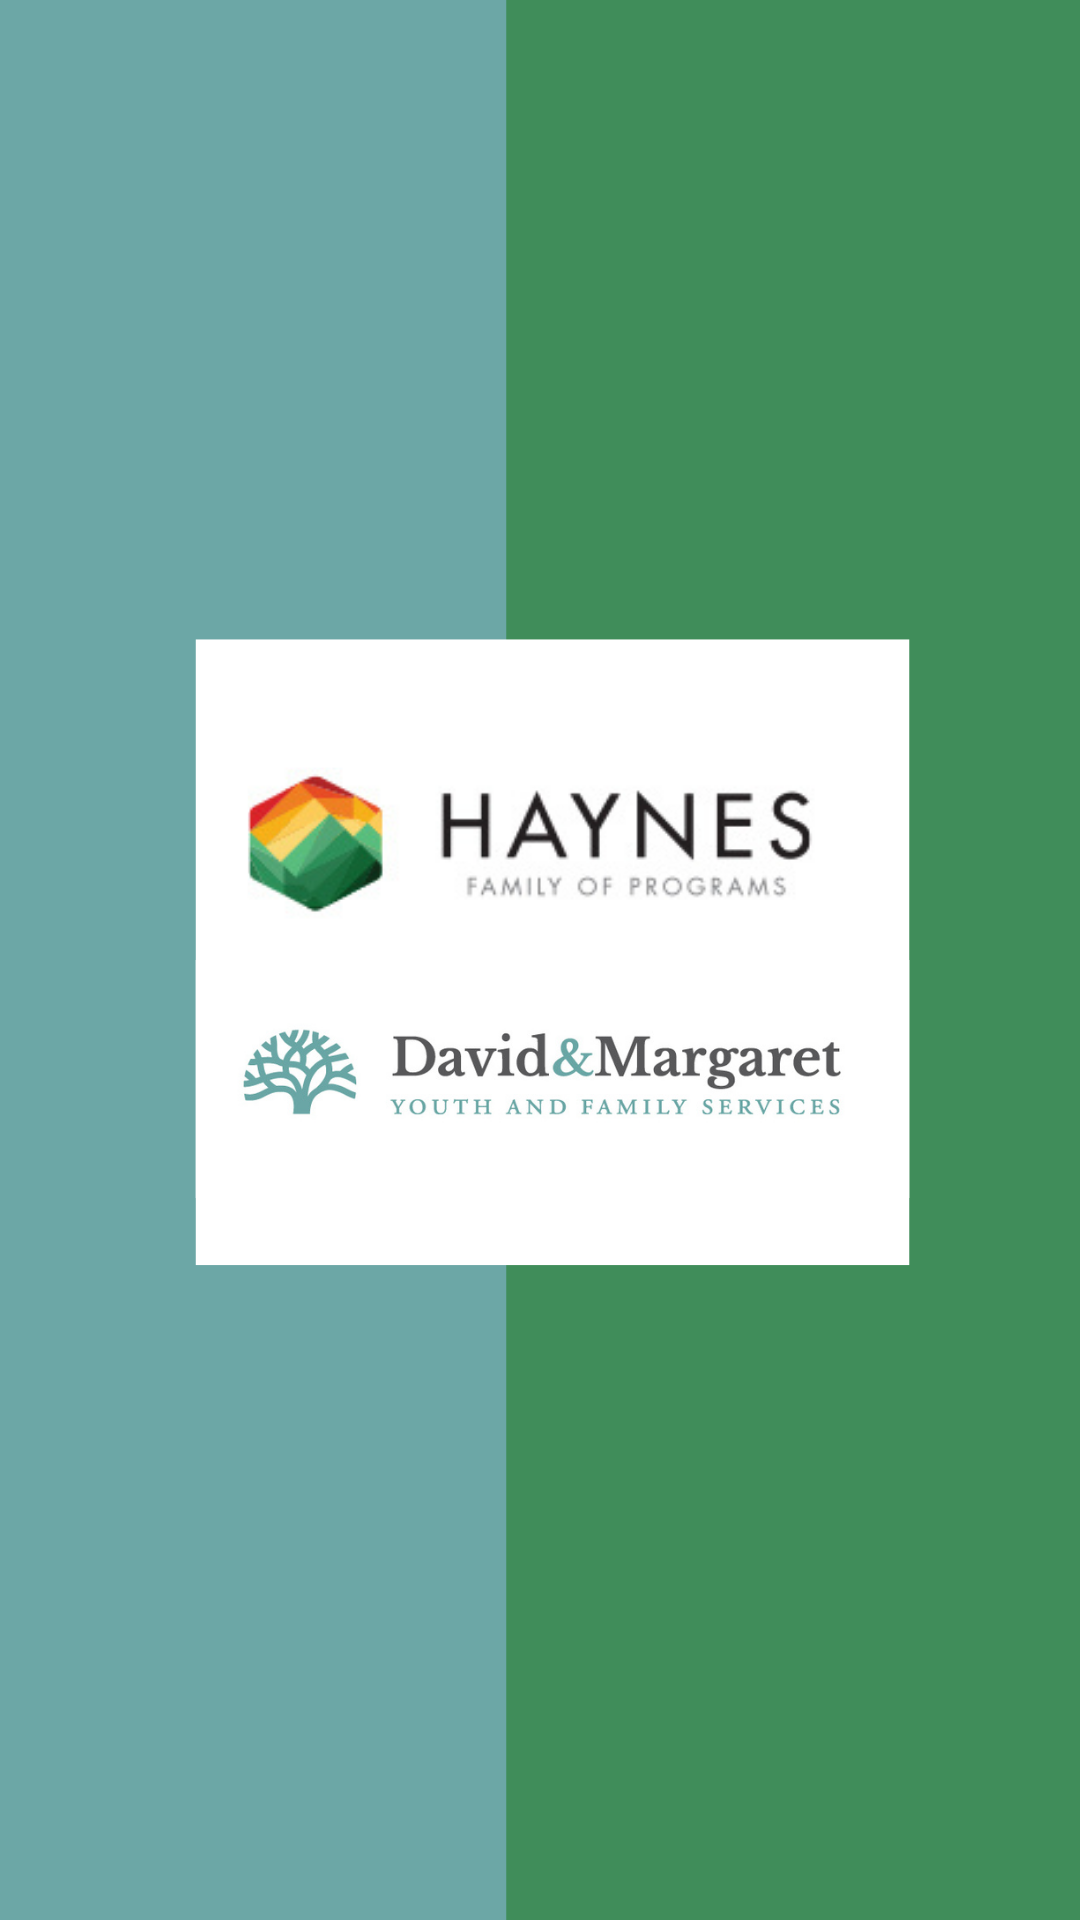 HAYNES FAMILY OF PROGRAMS AND DAVID & MARGARET AND AFFILIATES ANNOUNCE INTENT TO MERGE